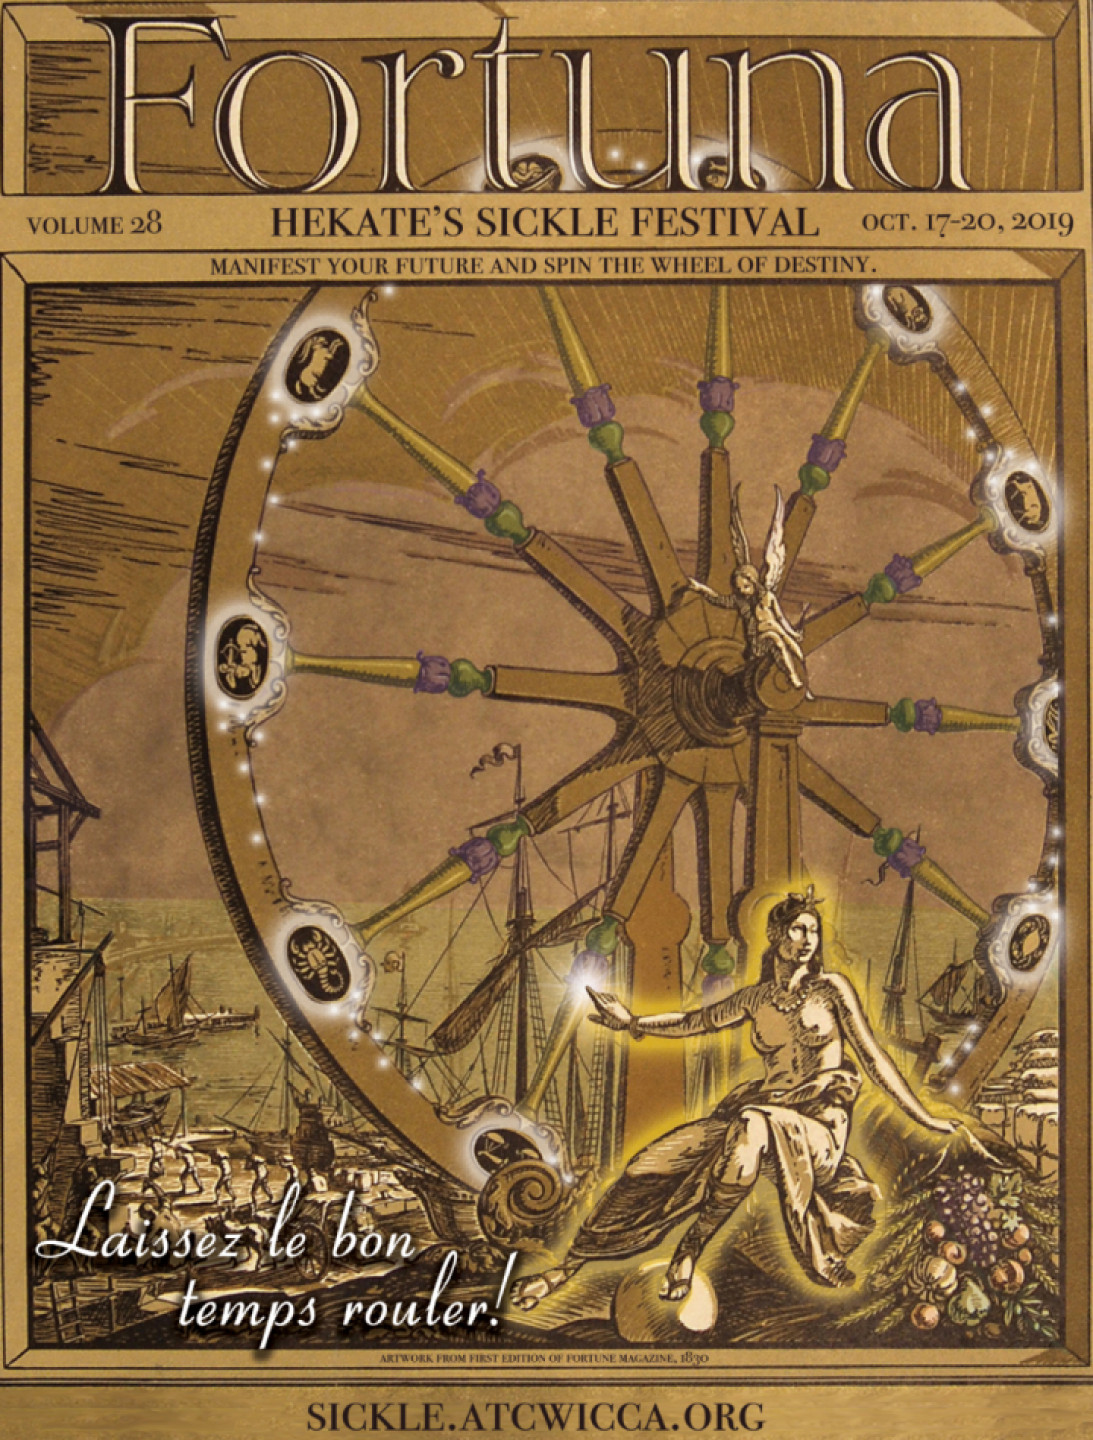 Hekate's Sickle Festival 2019